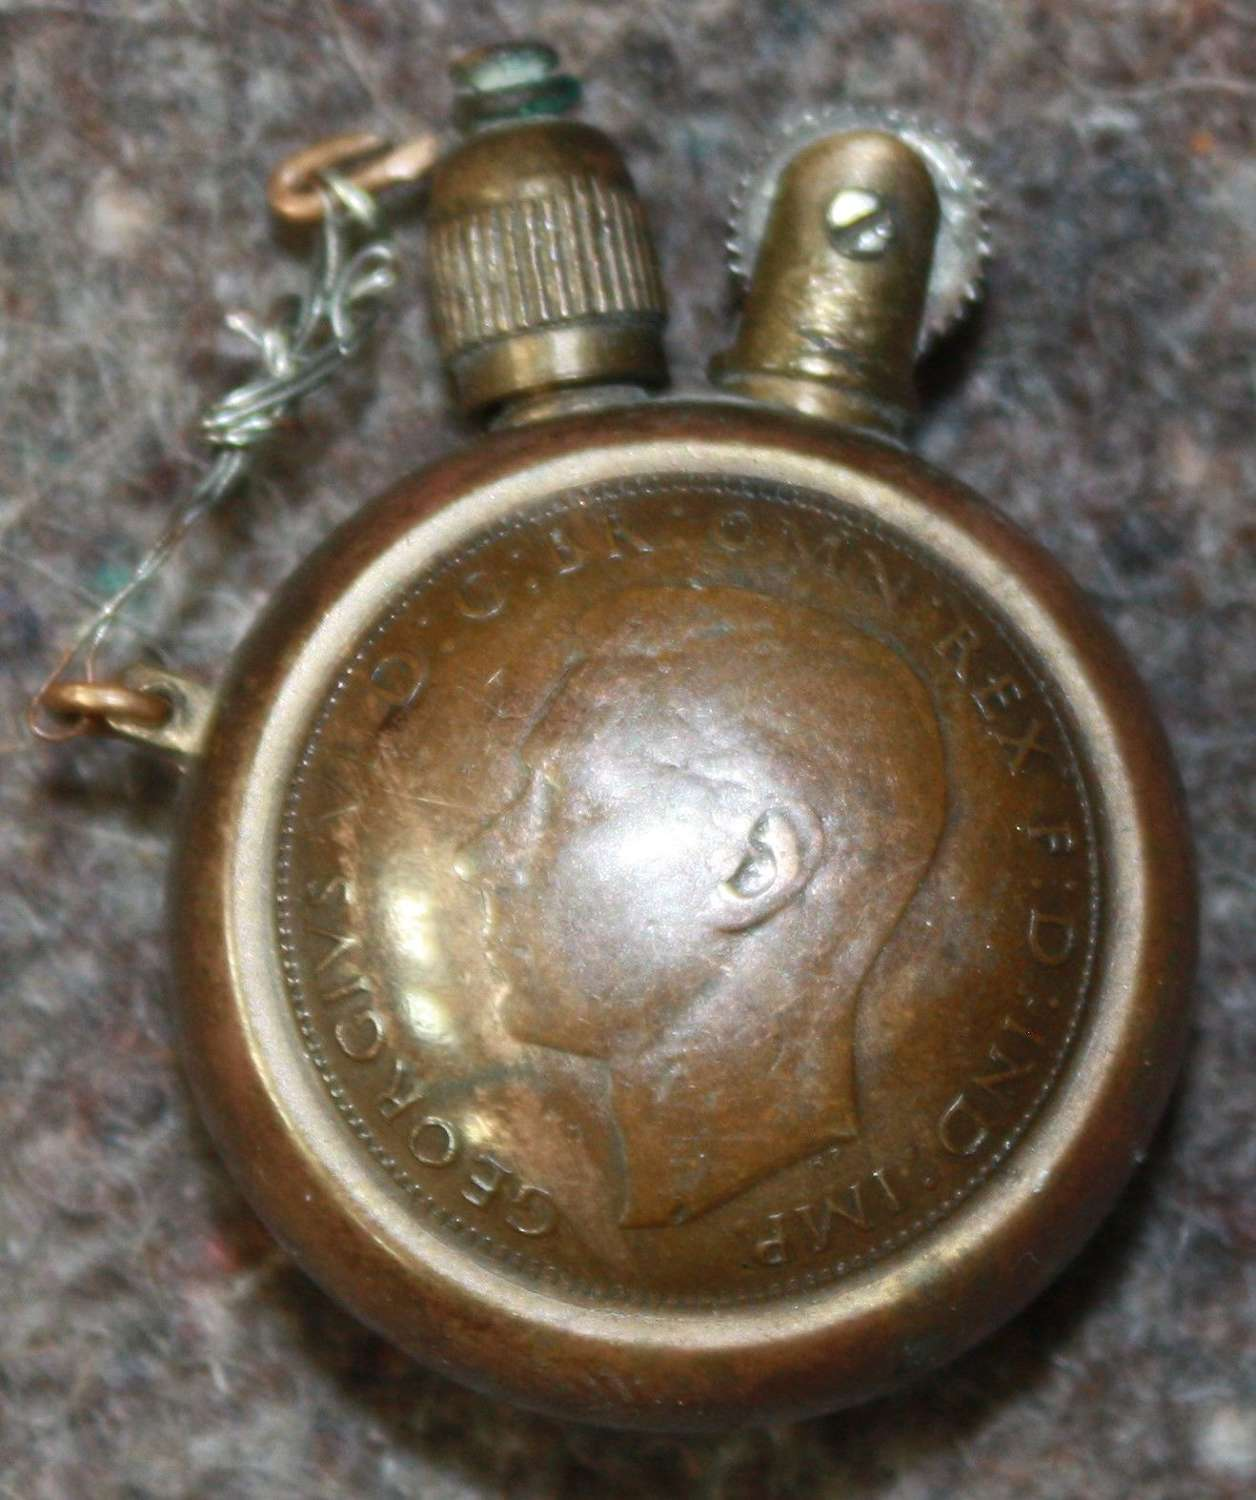 A WWII PENNY LIGHTER MADE FROM 2 HALF PENNIES 1941 DATED